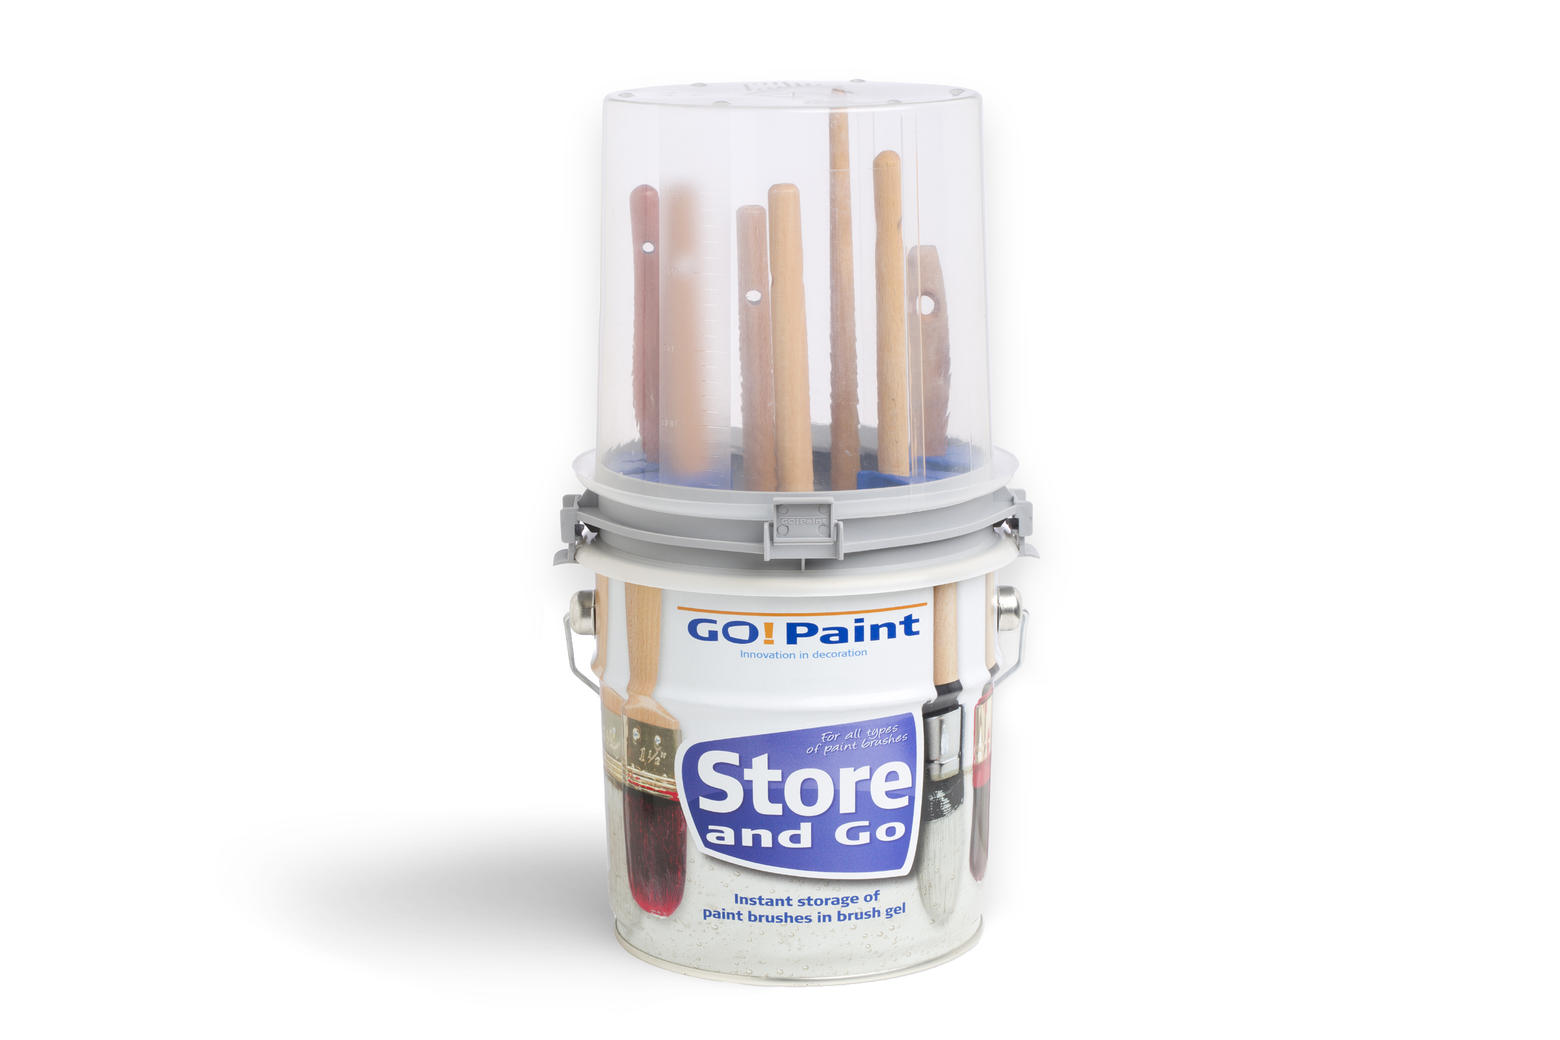 Go Paint Store And Go Systeem Compleet 1,5 Liter